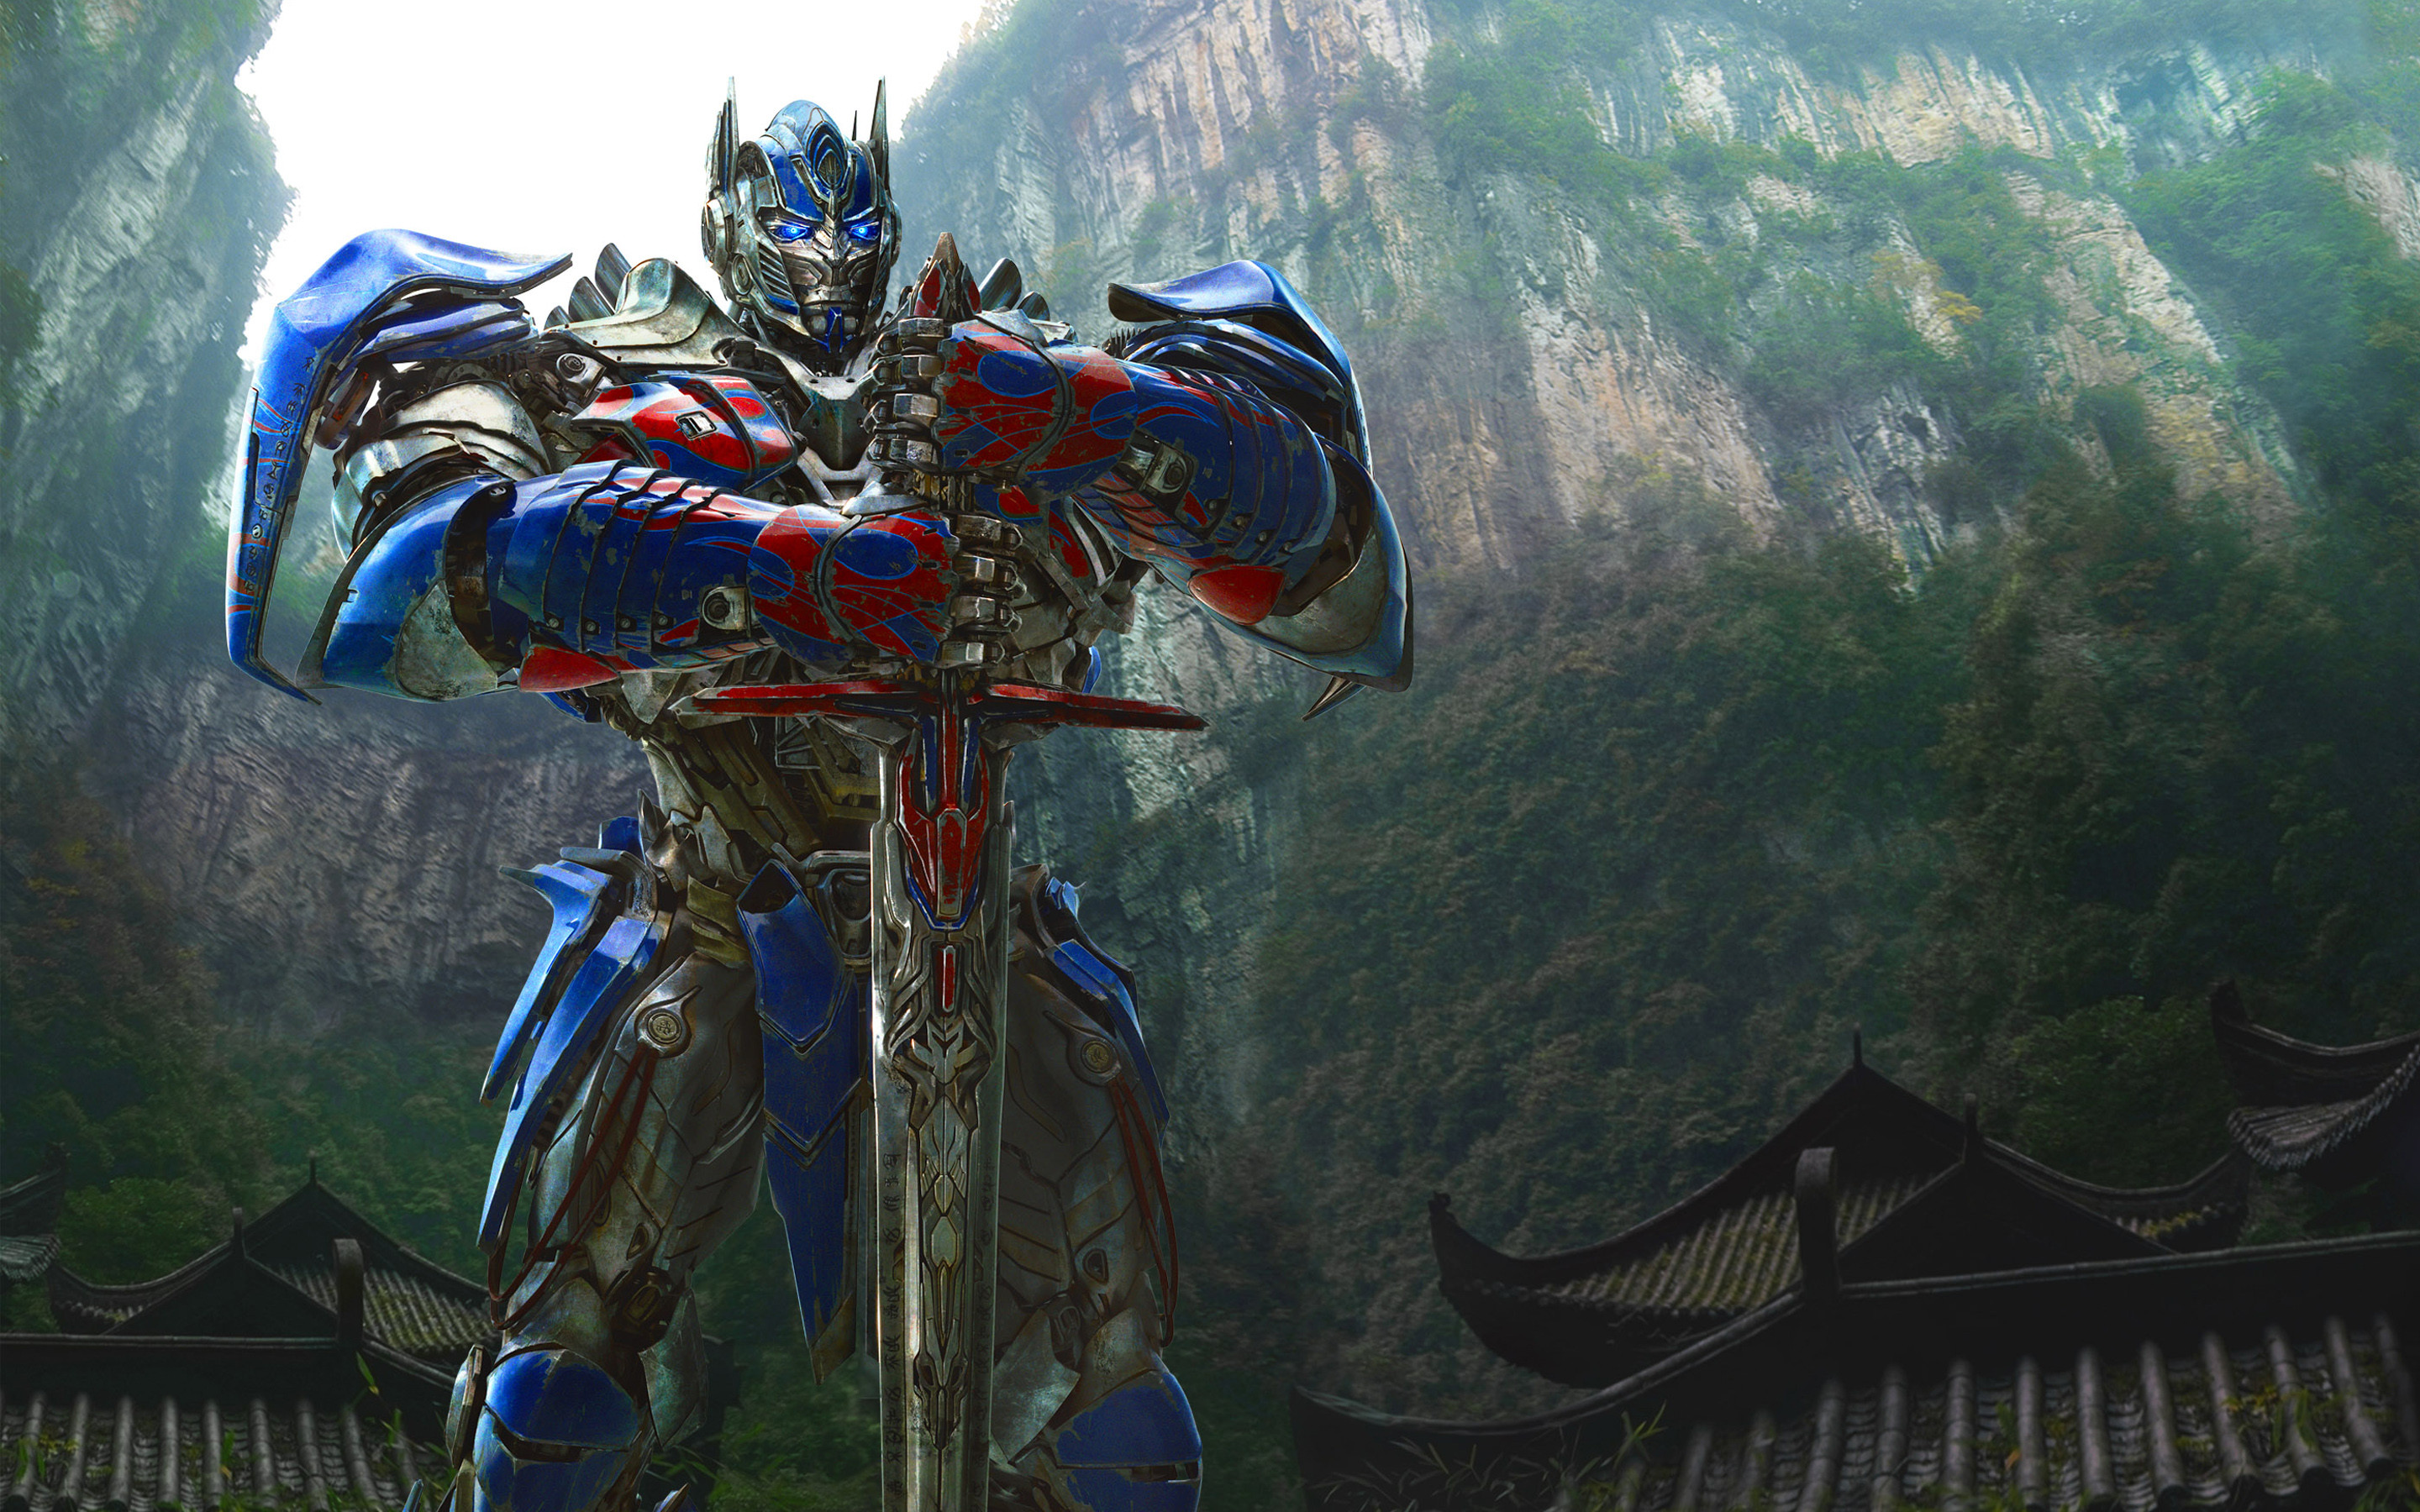 hd images of transformers